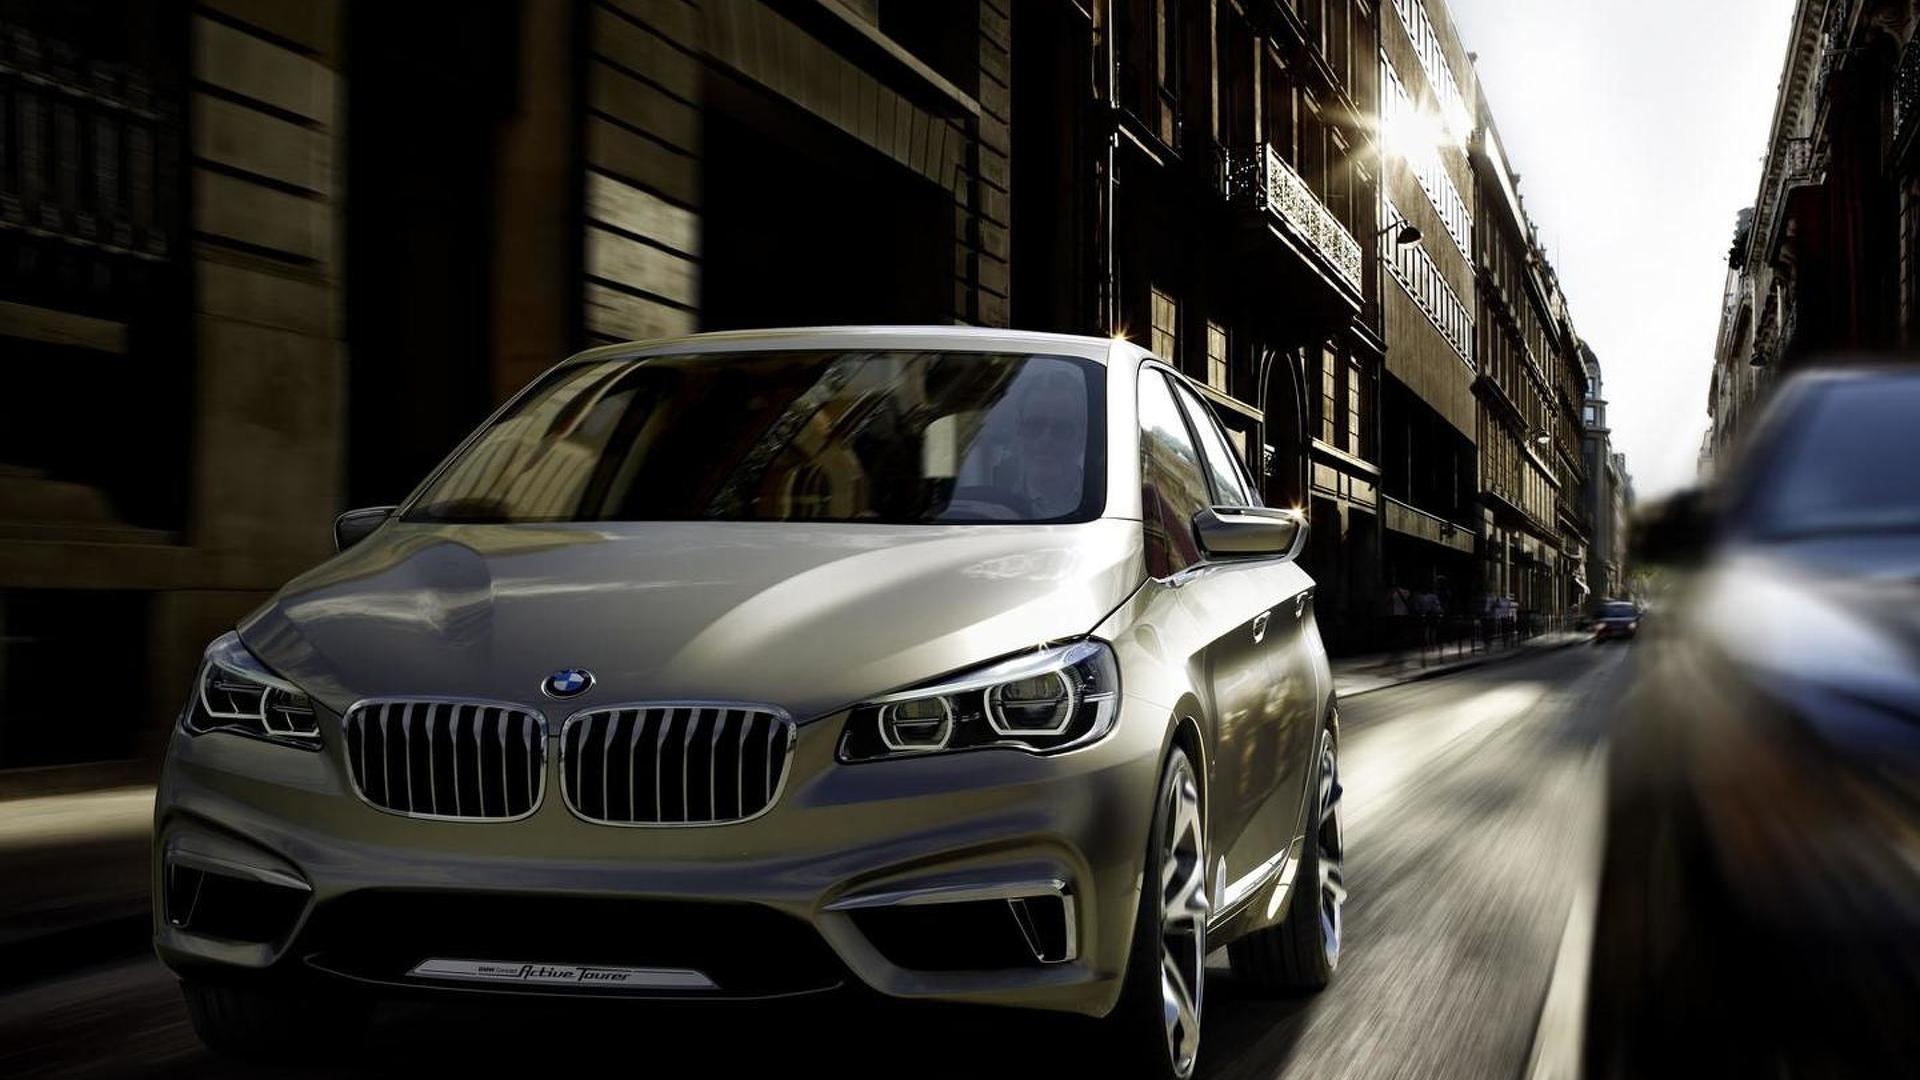 BMW exec confirms ten all-new models by the end of 2014 - report